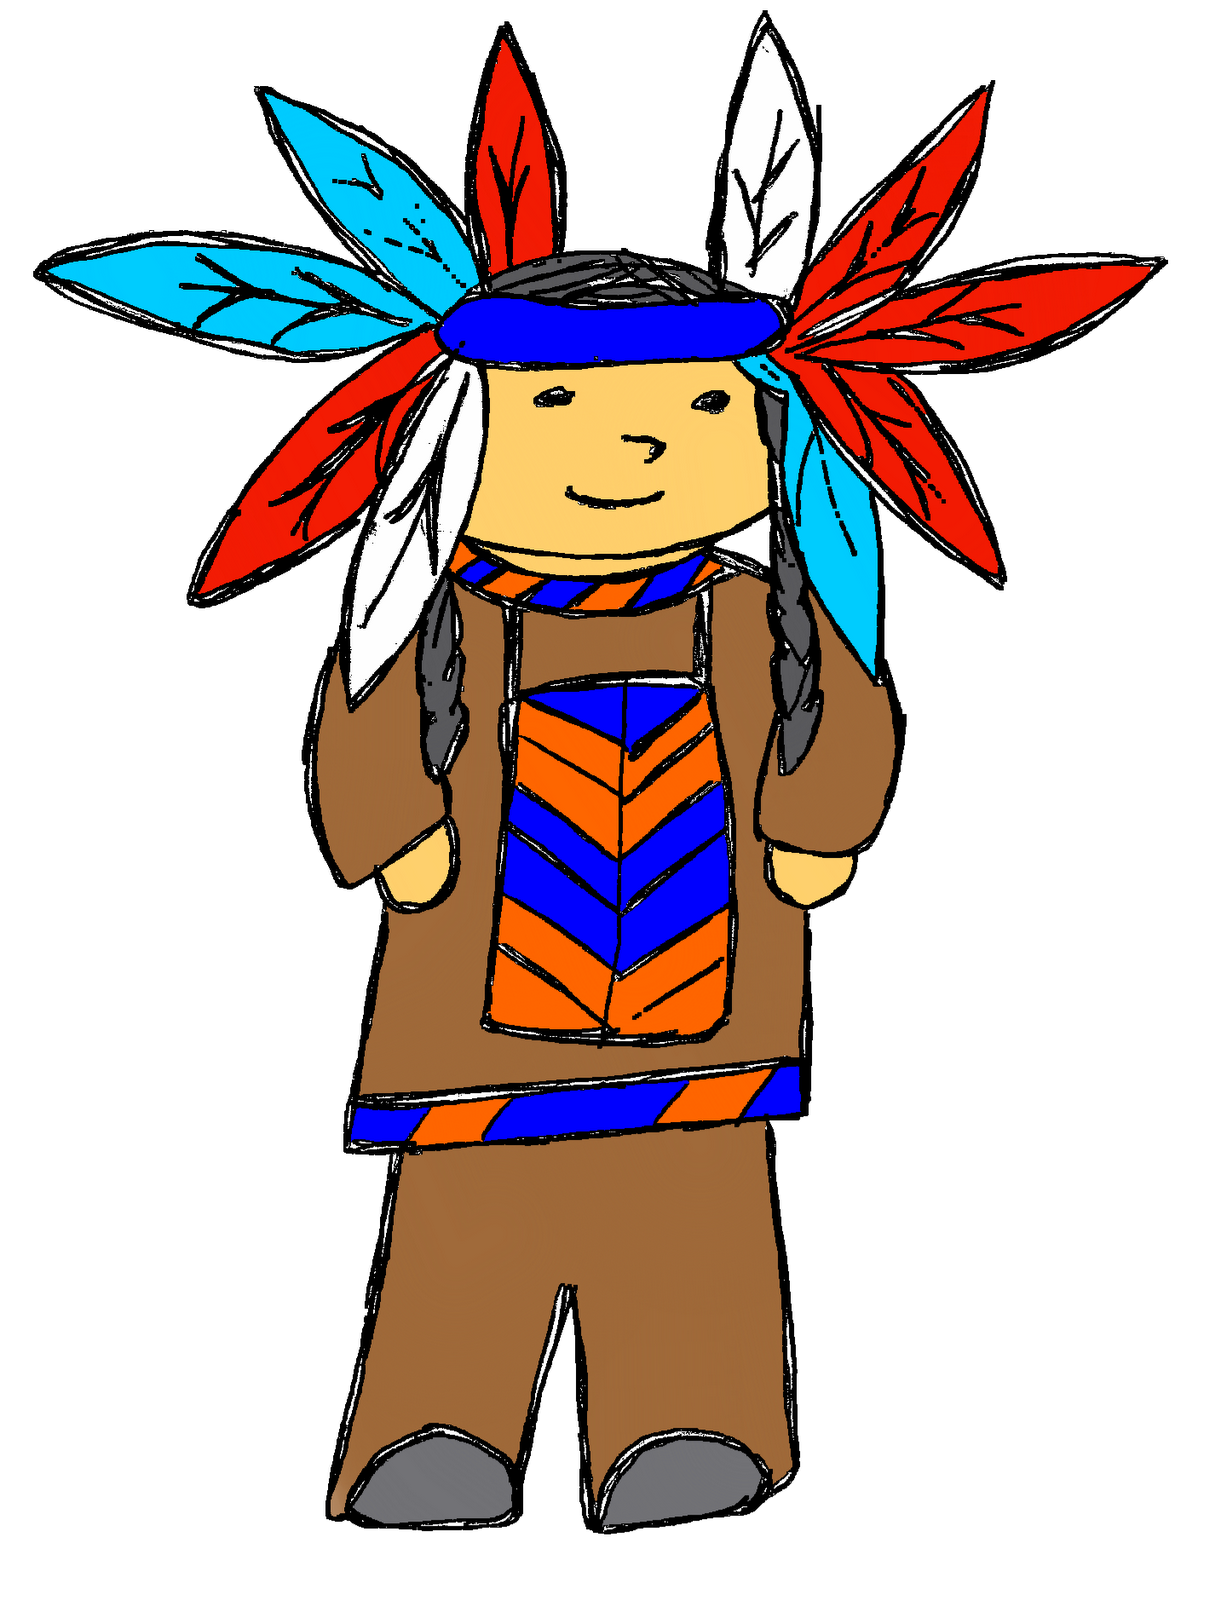 Thanksgiving chief indians clipart banner library stock Indian Chief Clipart - clipart banner library stock